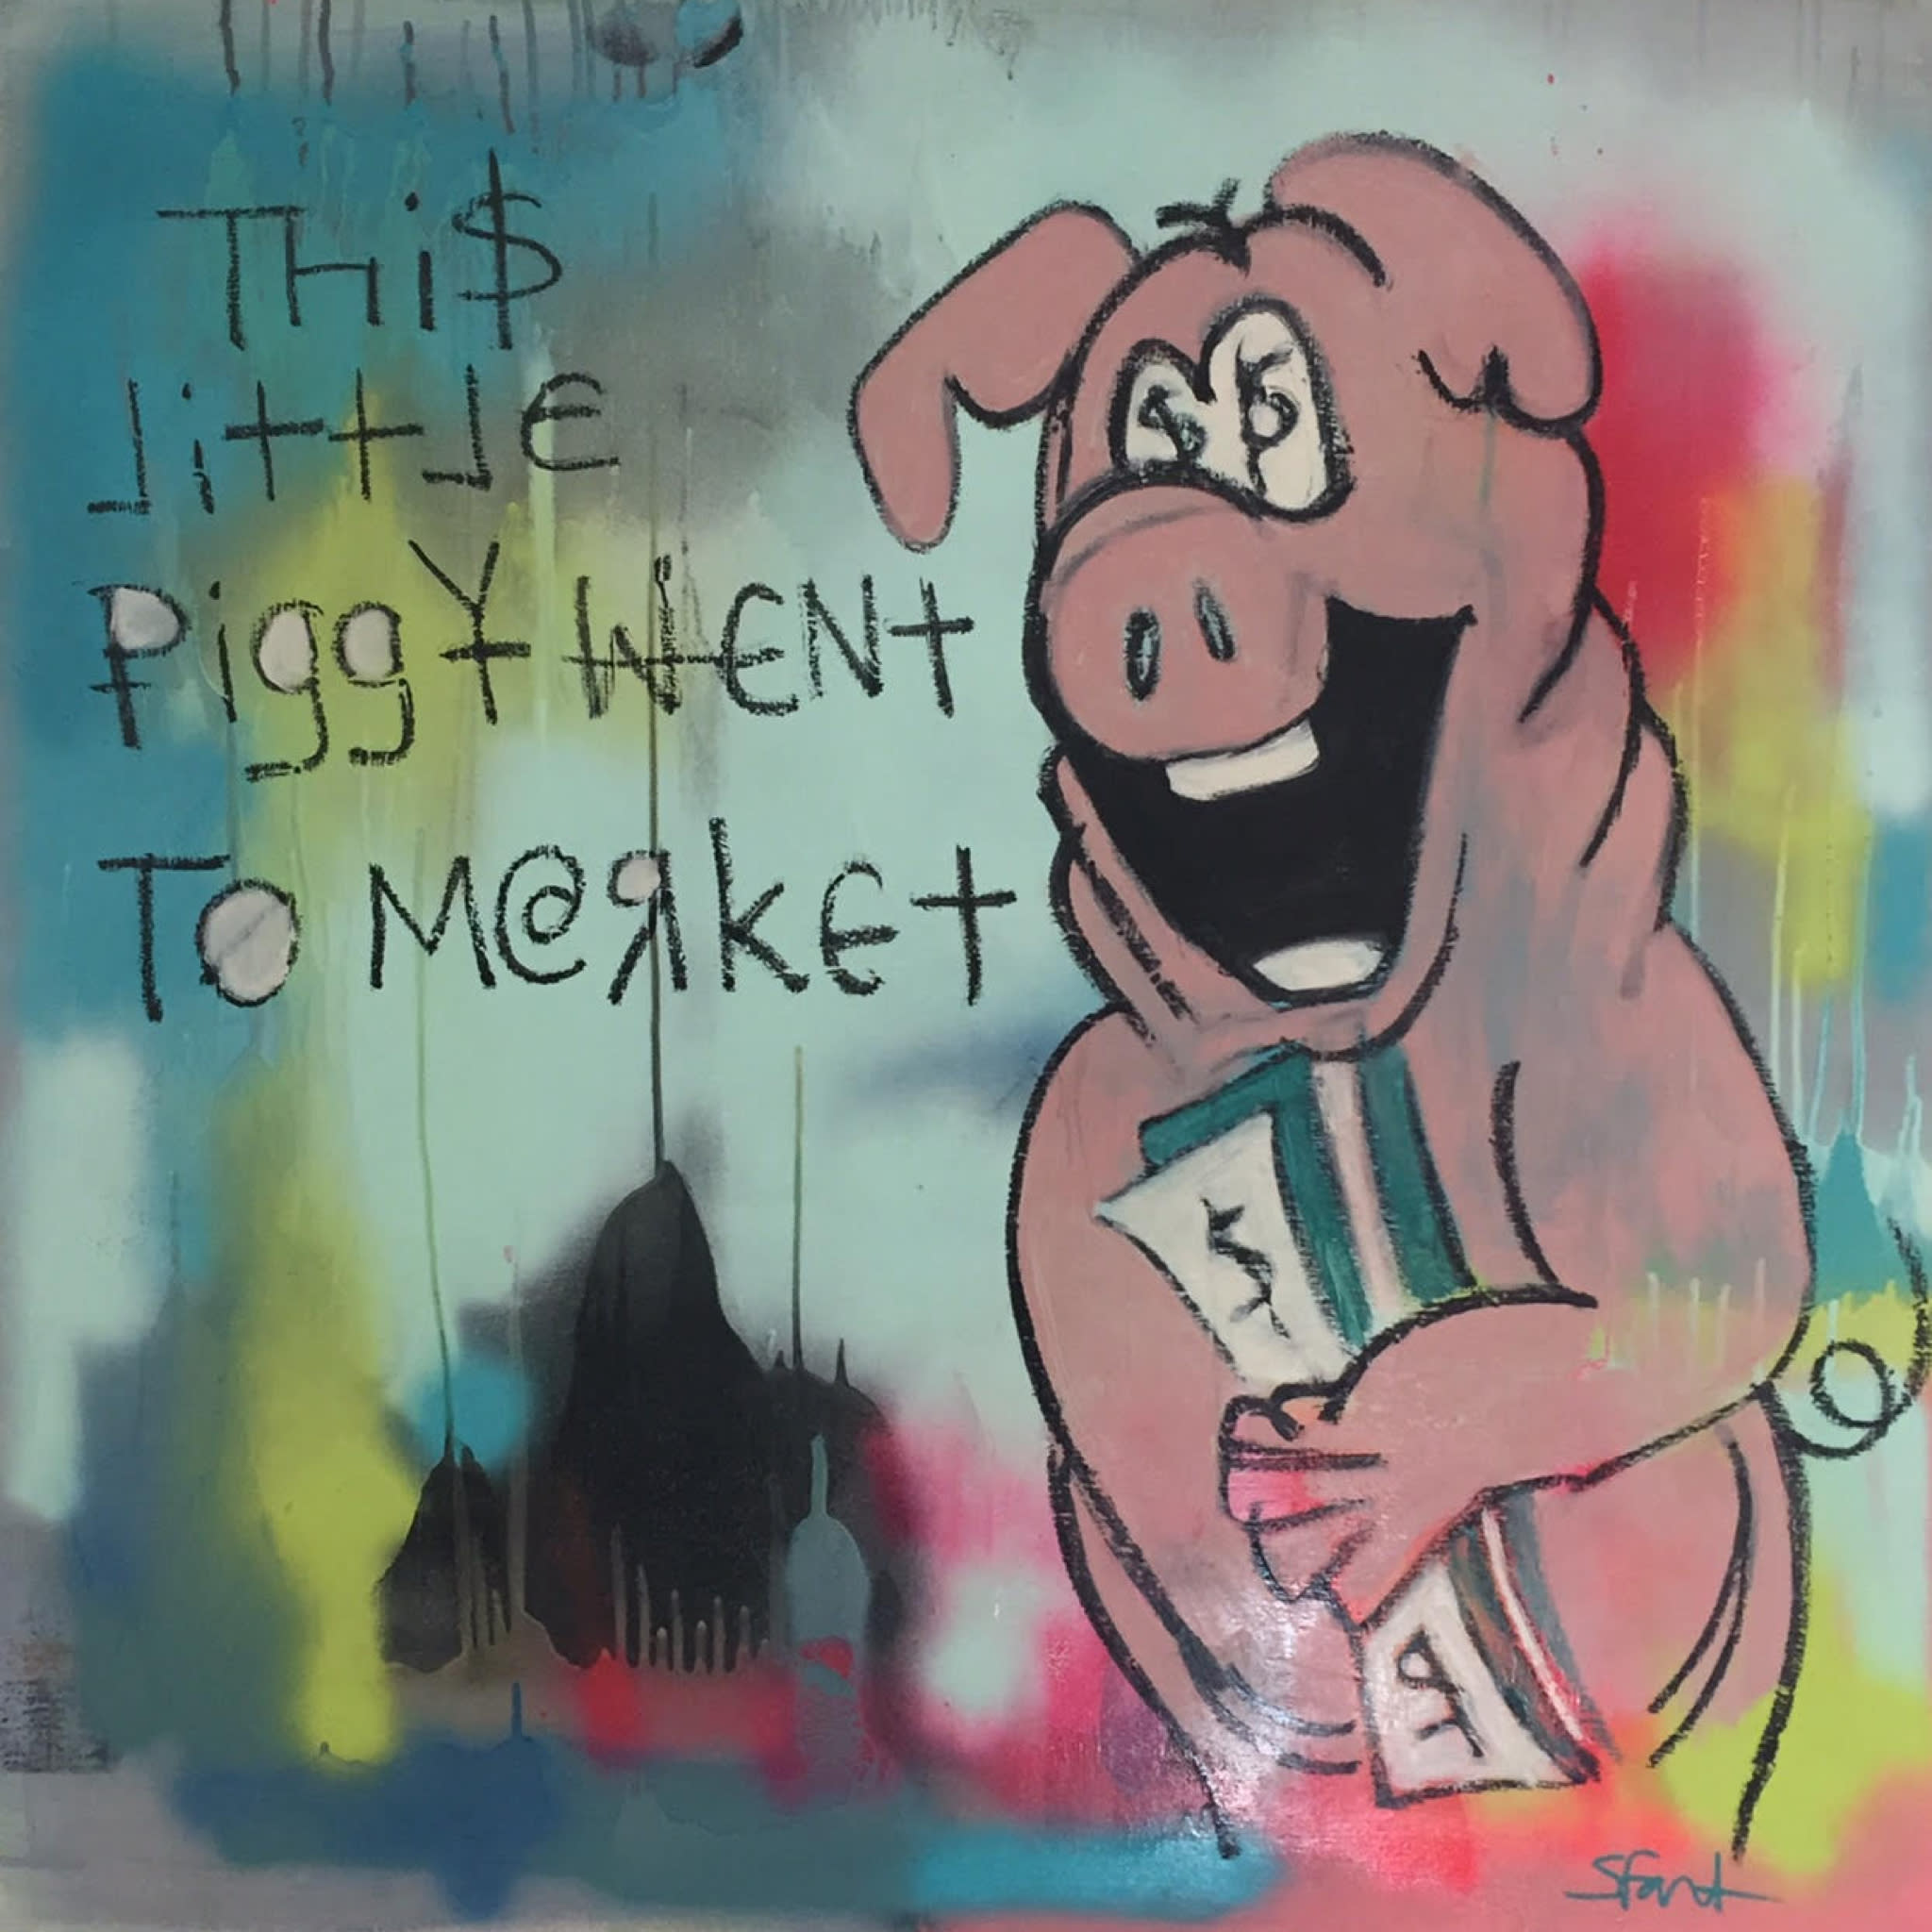 This little piggy went to market by steph fonteyn utss5p